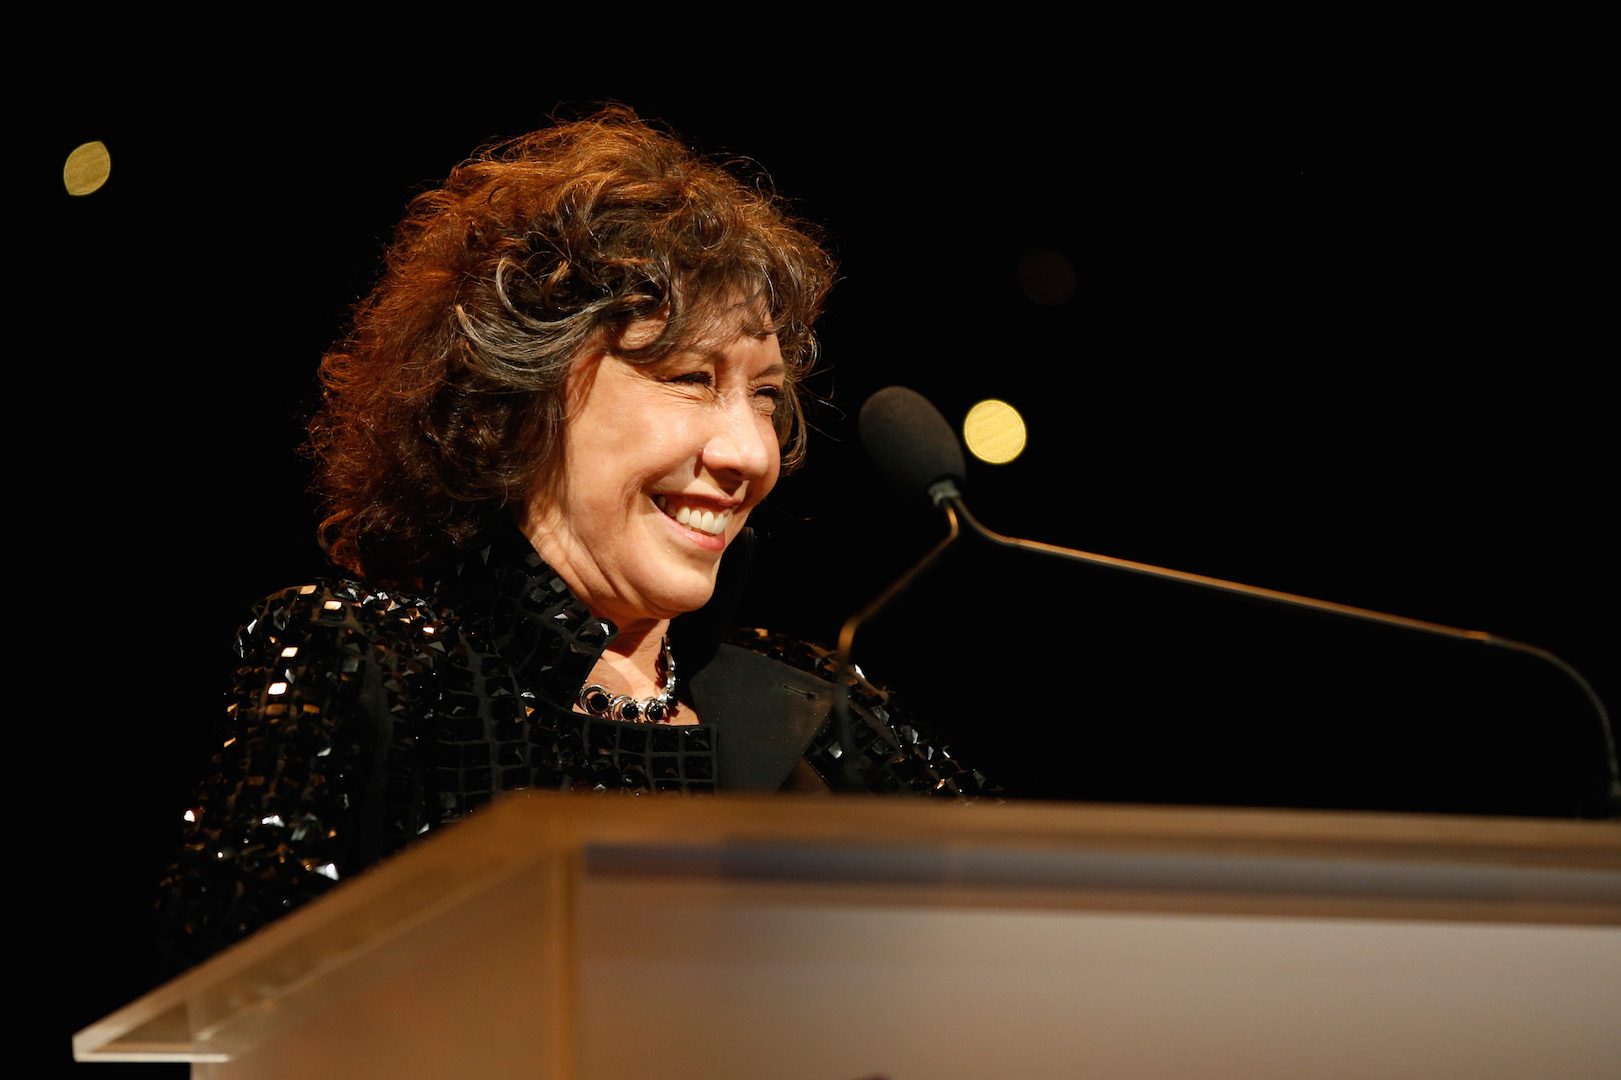 CENTURY CITY, CA - NOVEMBER 07:  Actress Lily Tomlin speaks onstage at the Los Angeles LGBT Center 46th Anniversary Gala Vanguard Awards at the Hyatt Regency Century Plaza on November 7, 2015 in Century City, California.  (Photo by Joe Scarnici/Getty Images for Los Angeles LGBT Center)